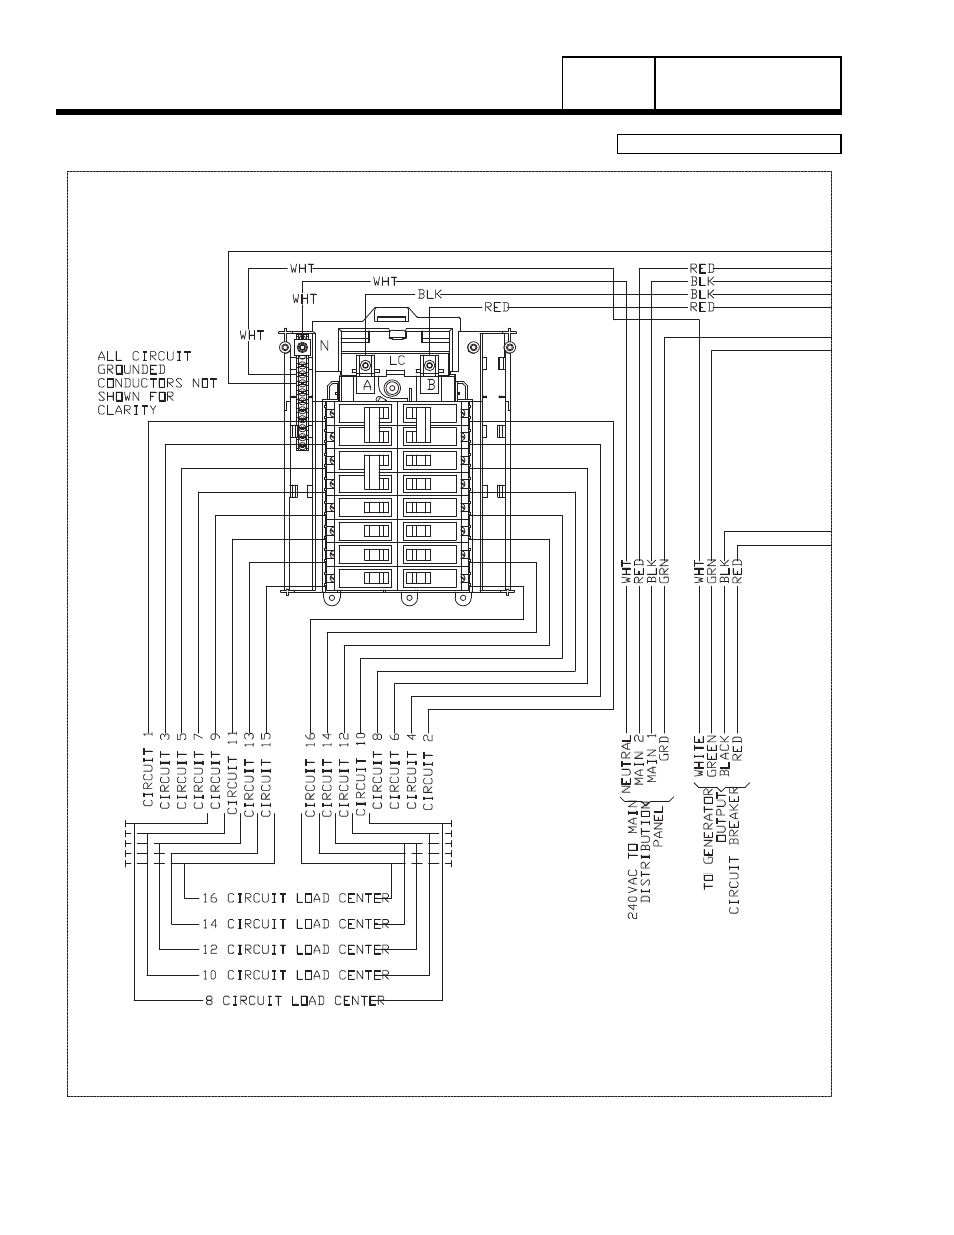 Home Wiring 10 Kw Generator Download Diagrams 10kw Standby Diagram Group G Part 7 Generac Onan